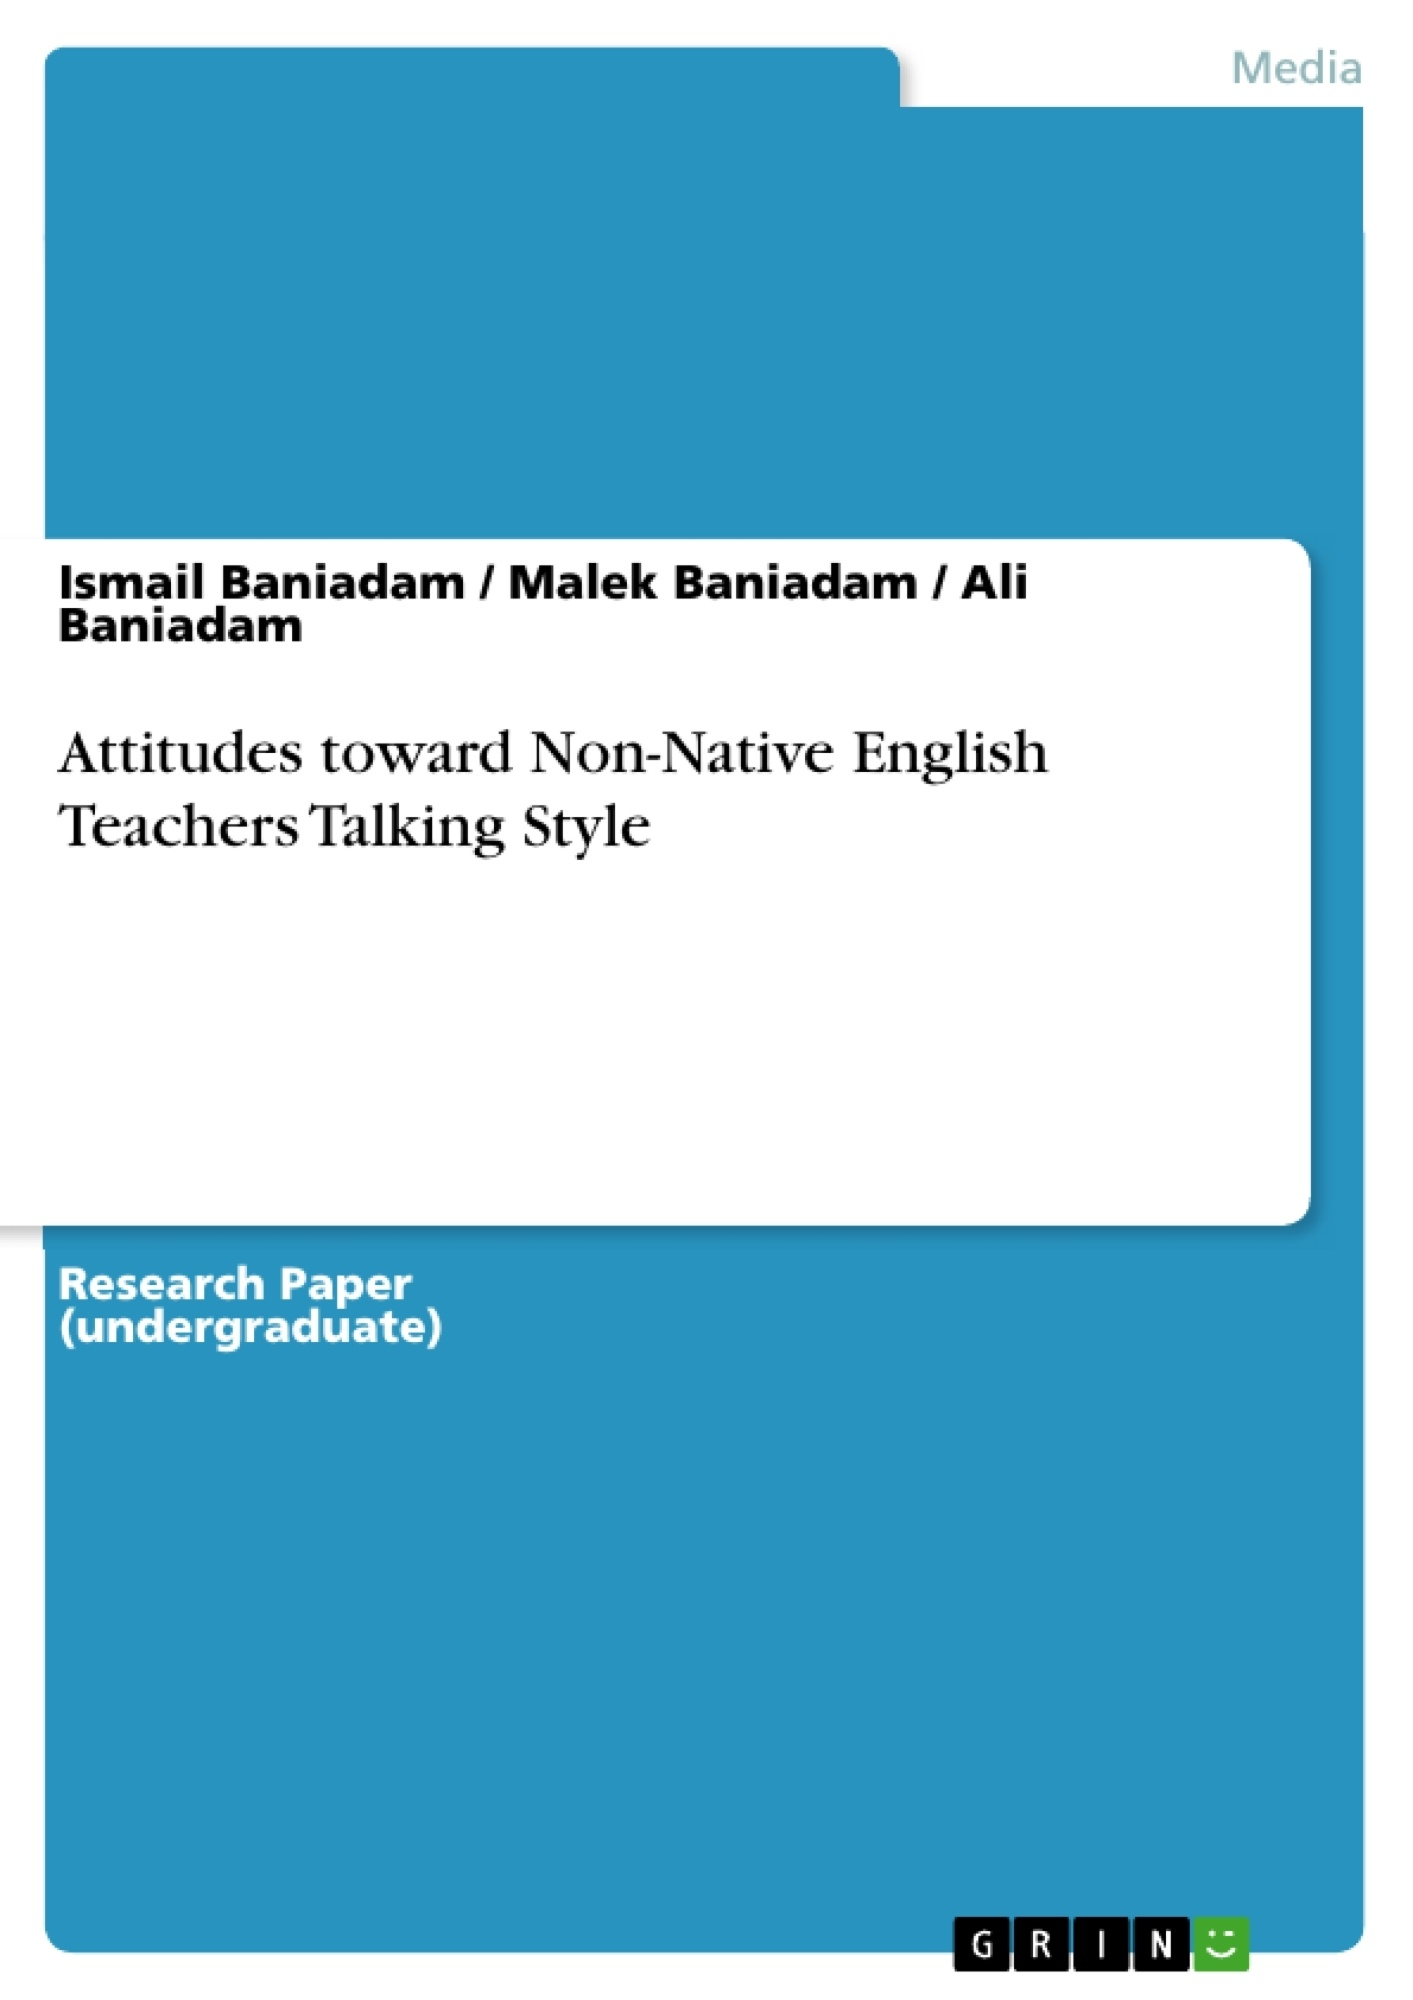 Title: Attitudes toward Non-Native English Teachers Talking Style